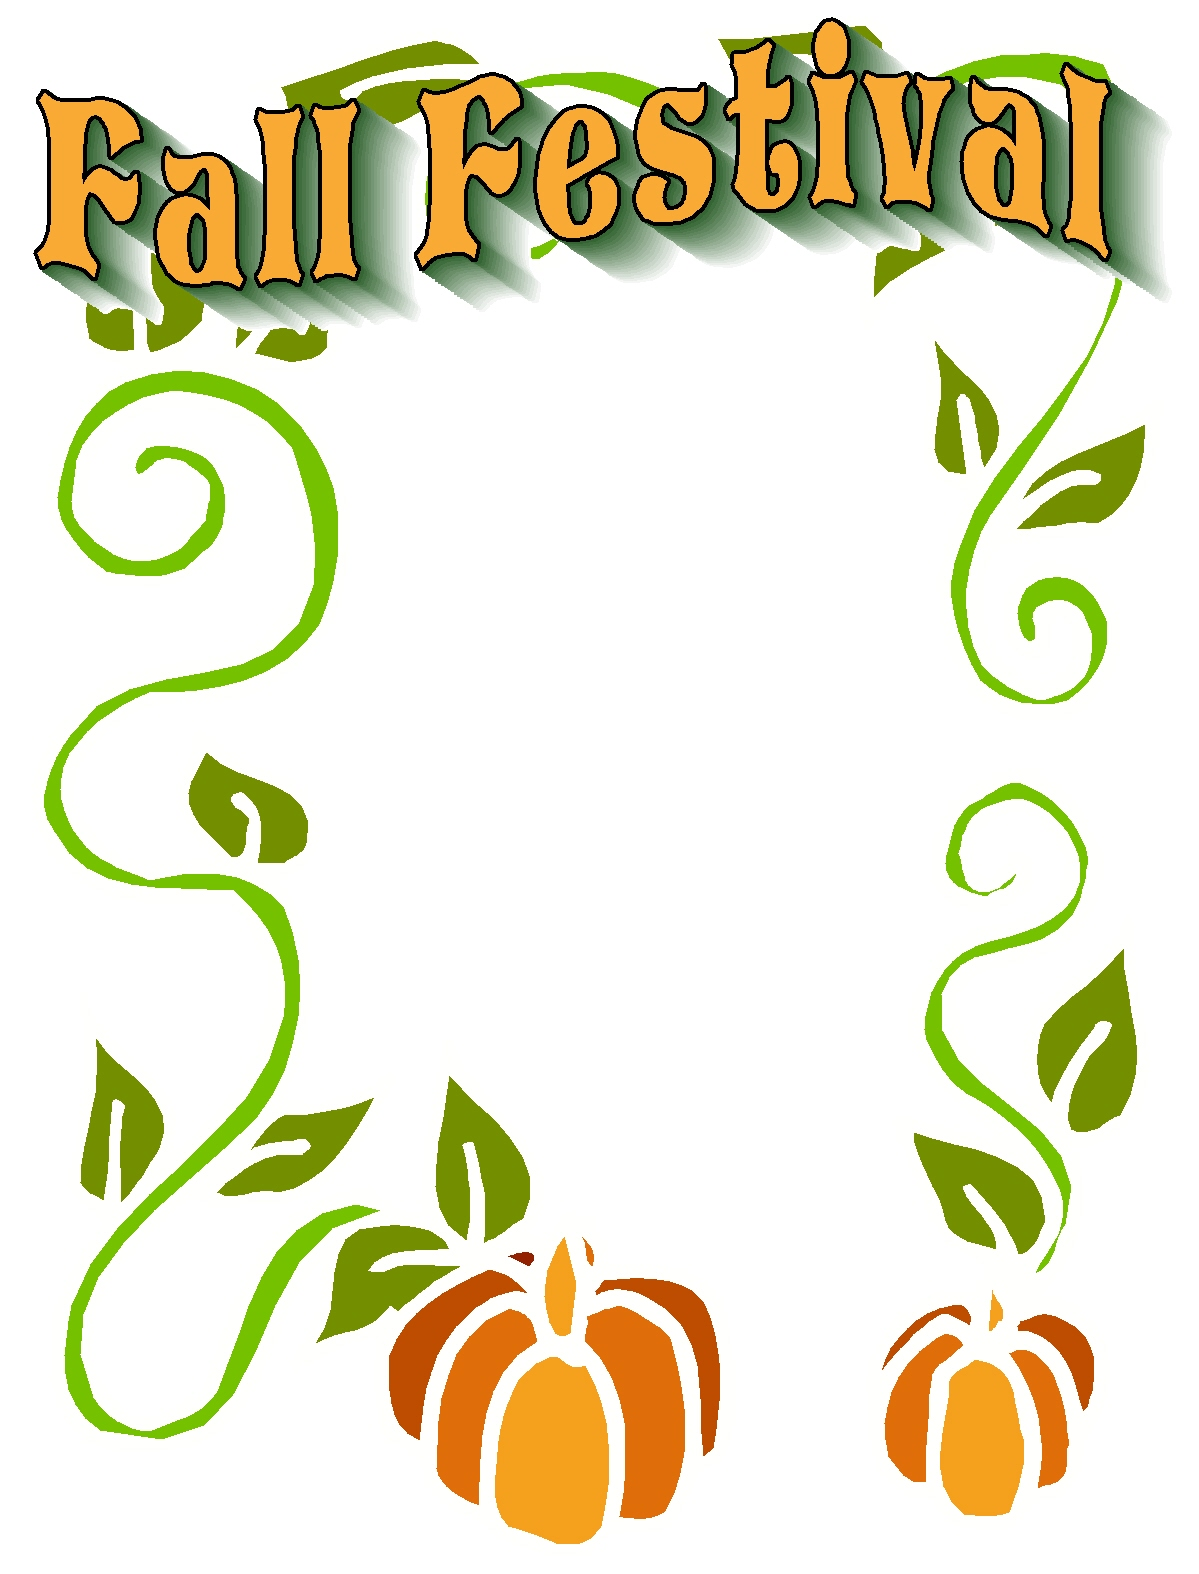 Christian fall festival clipart graphic library stock Free Art Festival Cliparts, Download Free Clip Art, Free Clip Art on ... graphic library stock